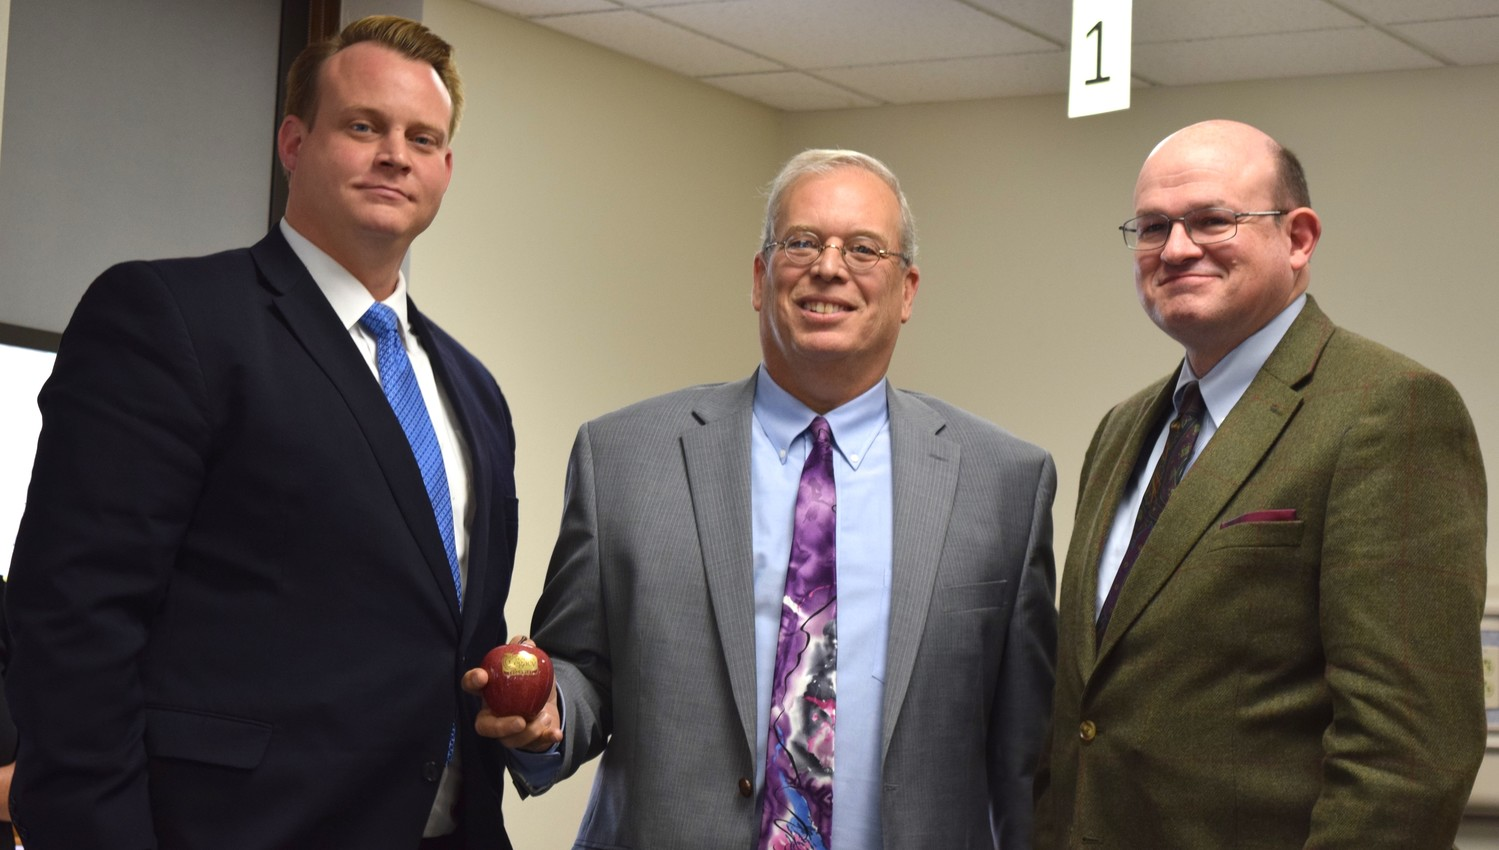 Skaggs Foundation grant committee member Matt Trokey, center, awards a ceremonial apple representing grant funding to Ozarks Technical Community College Table Rock Dean Robert Griffith, left, and Chancellor Hal Higdon.